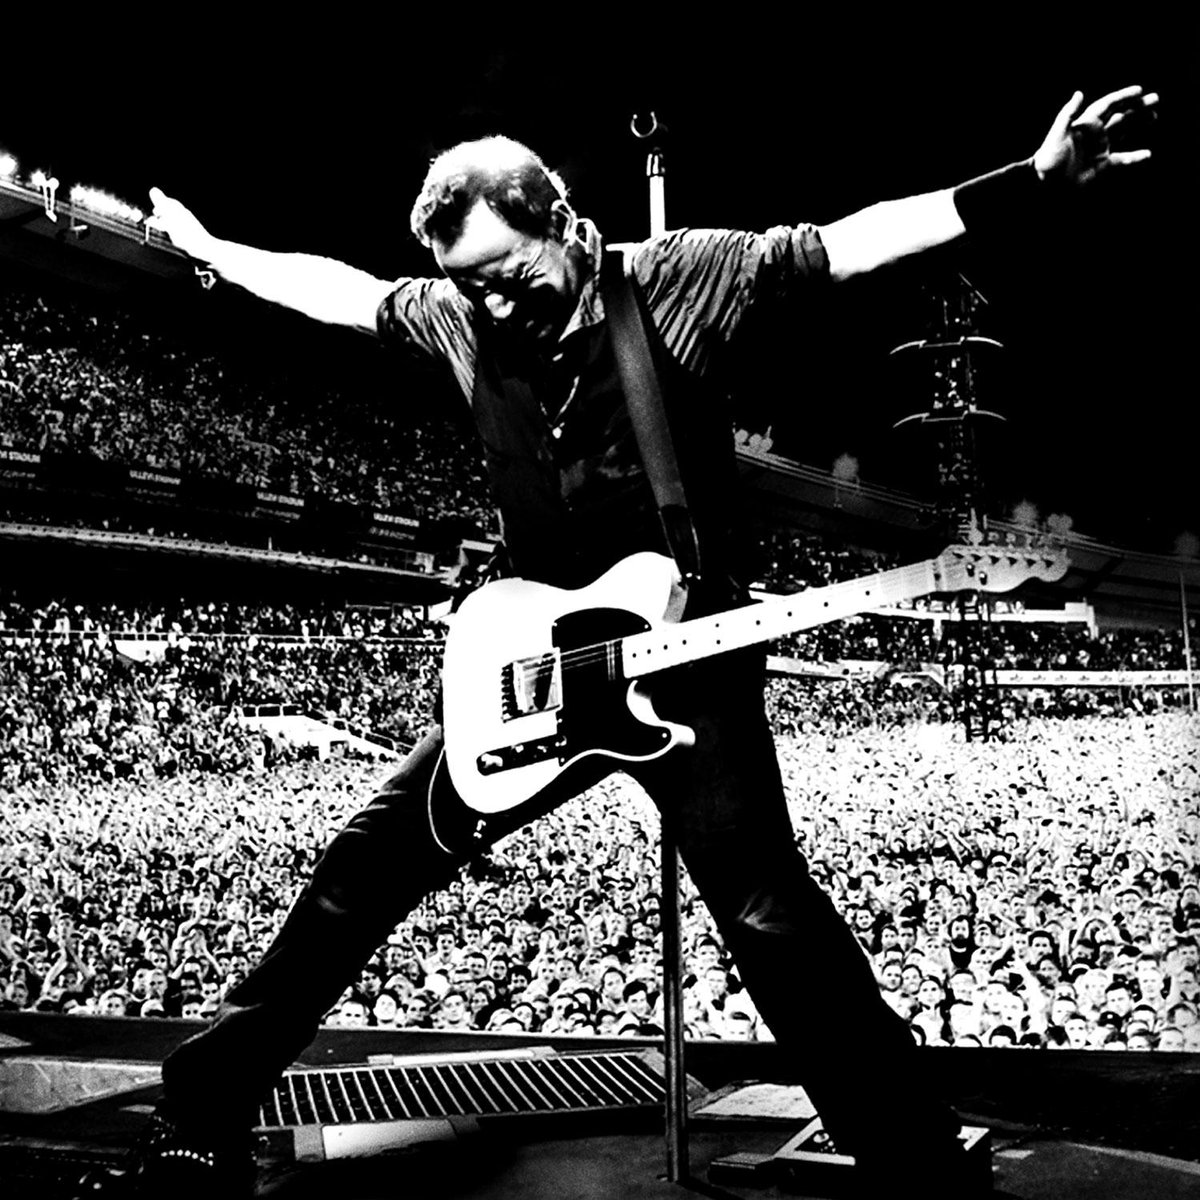 Growing up in PHL, never thought I'd be able to say this: Today we're live with @springsteen http://t.co/ycRFcvP53T http://t.co/Kchh6l3Z8r